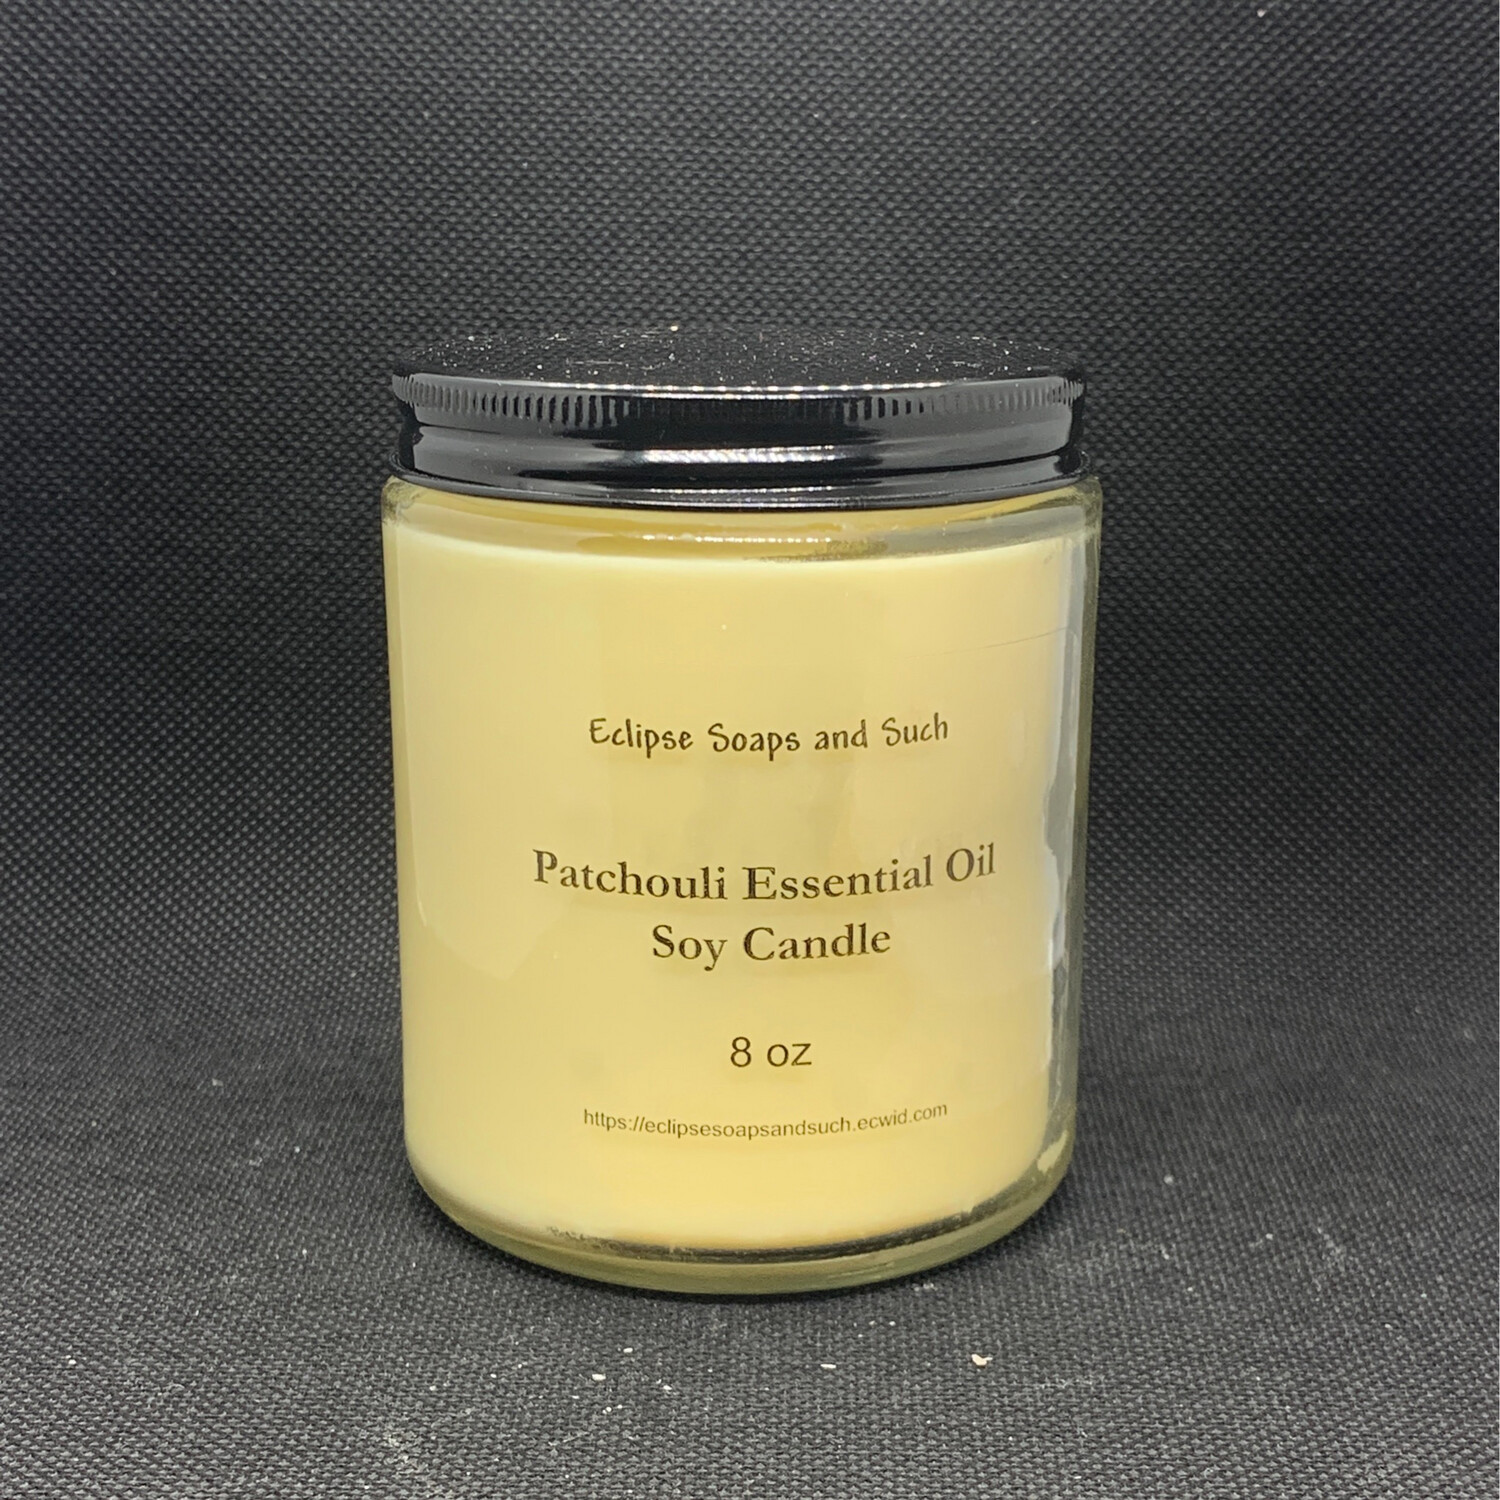 Patchouli Essential Oil Soy Candle 8oz